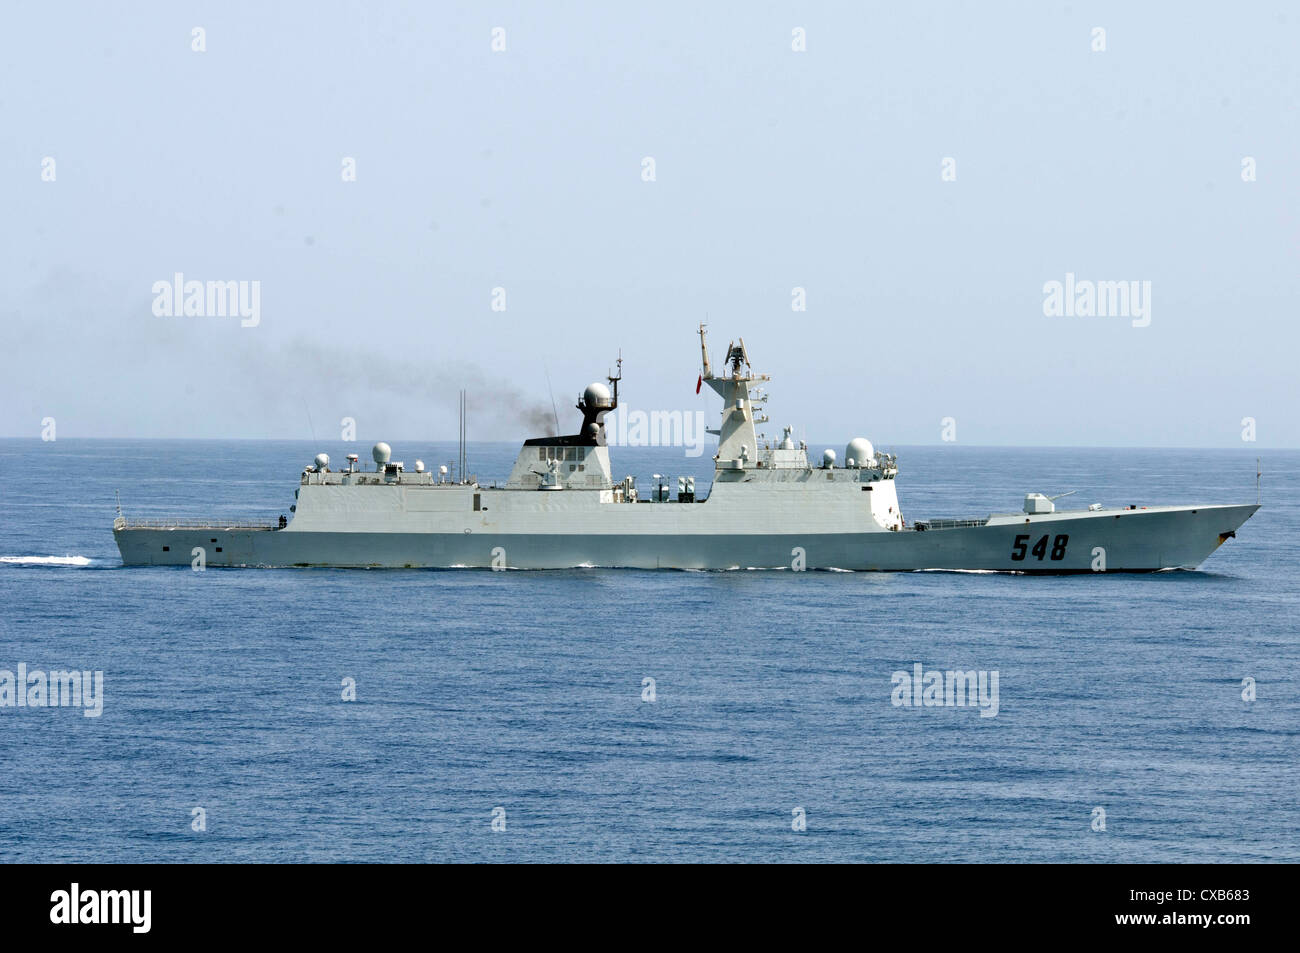 The Chinese Peoples Liberation Army Navy frigate Yi Yang